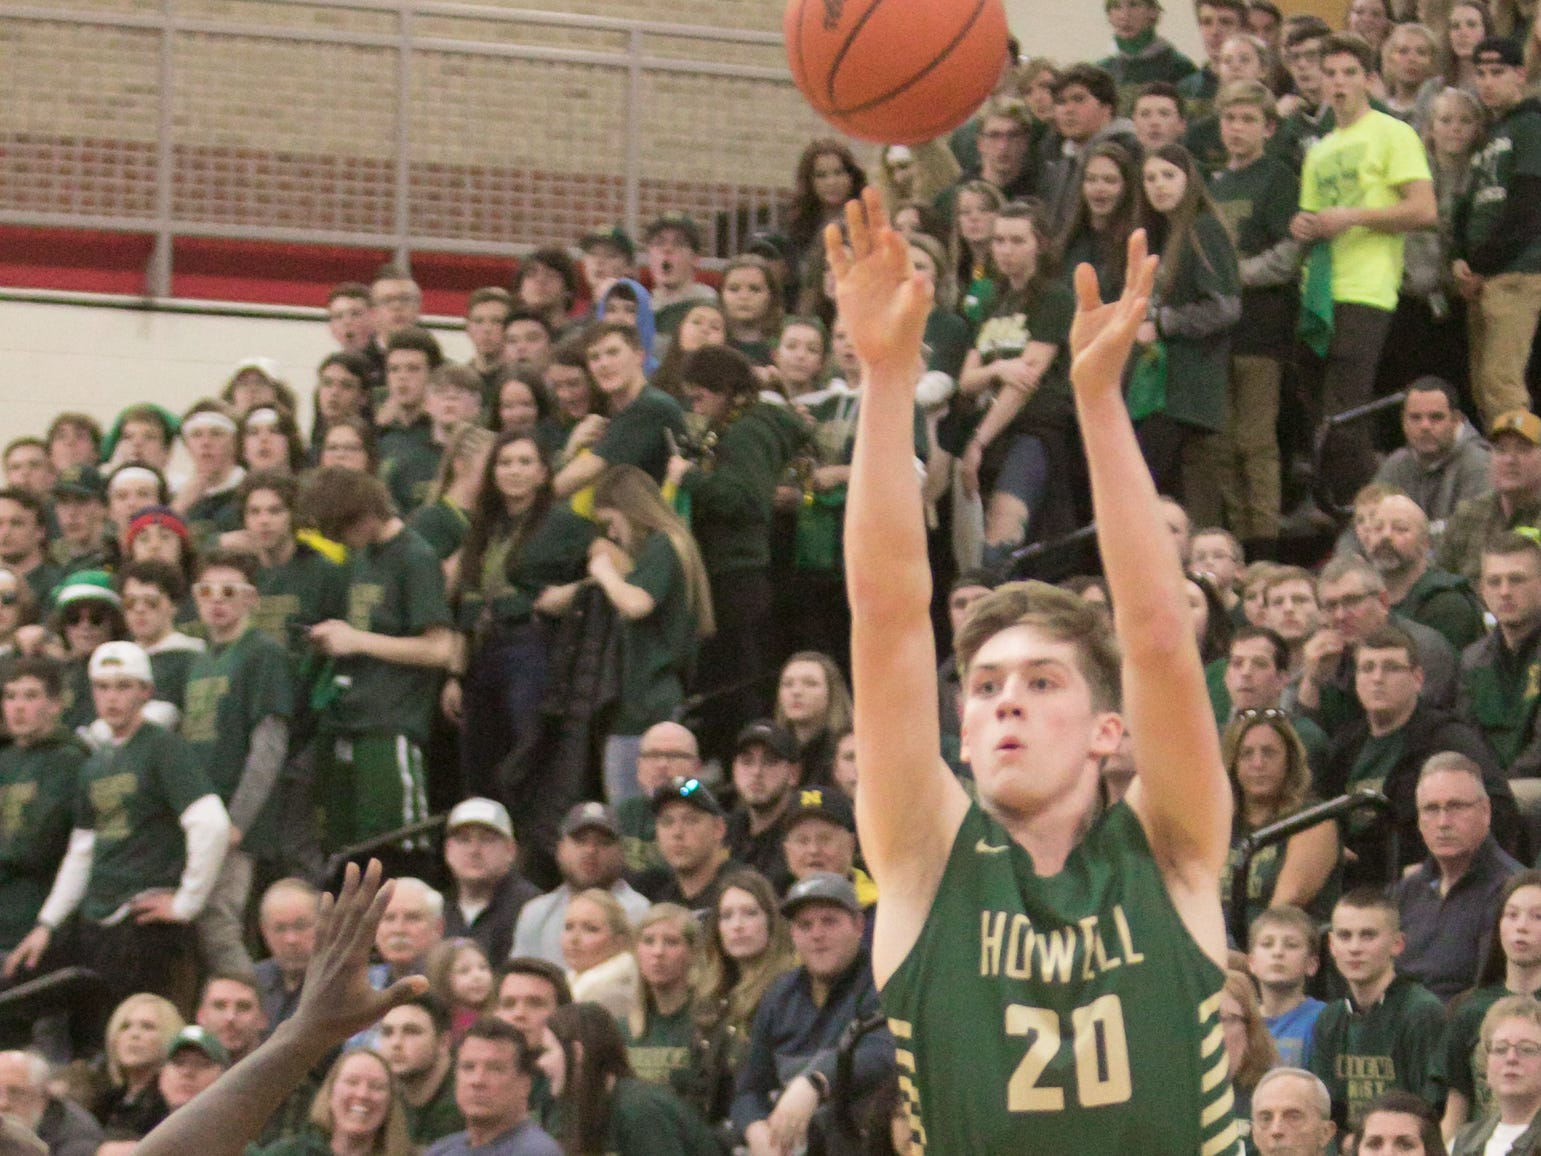 Sophomore JD Dell scored five points off the bench for Howell in a 57-56 victory over Saginaw in a state basketball quarterfinal at Grand Blanc on Tuesday, March 12, 2019.